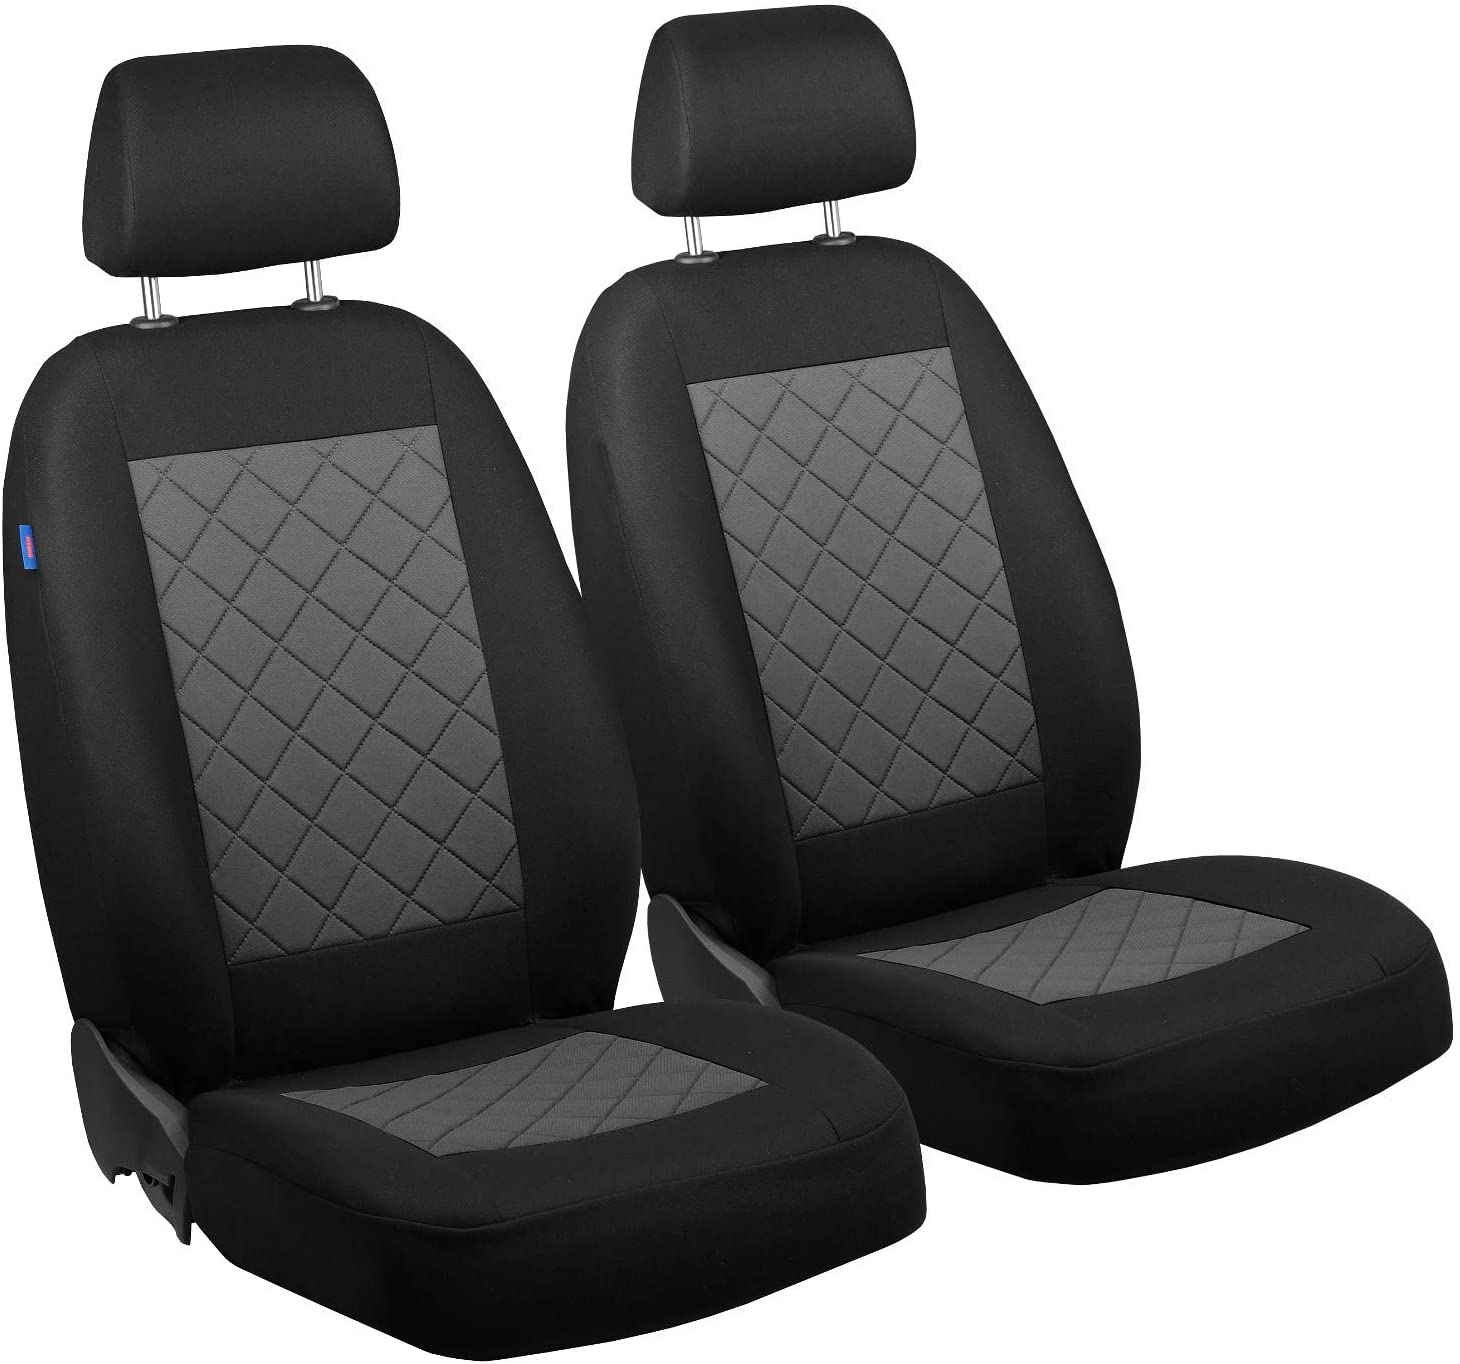 Zakschneider Car seat Covers for Ix35 - Front Seats - Color Premium Black with Grey Quilted Squares